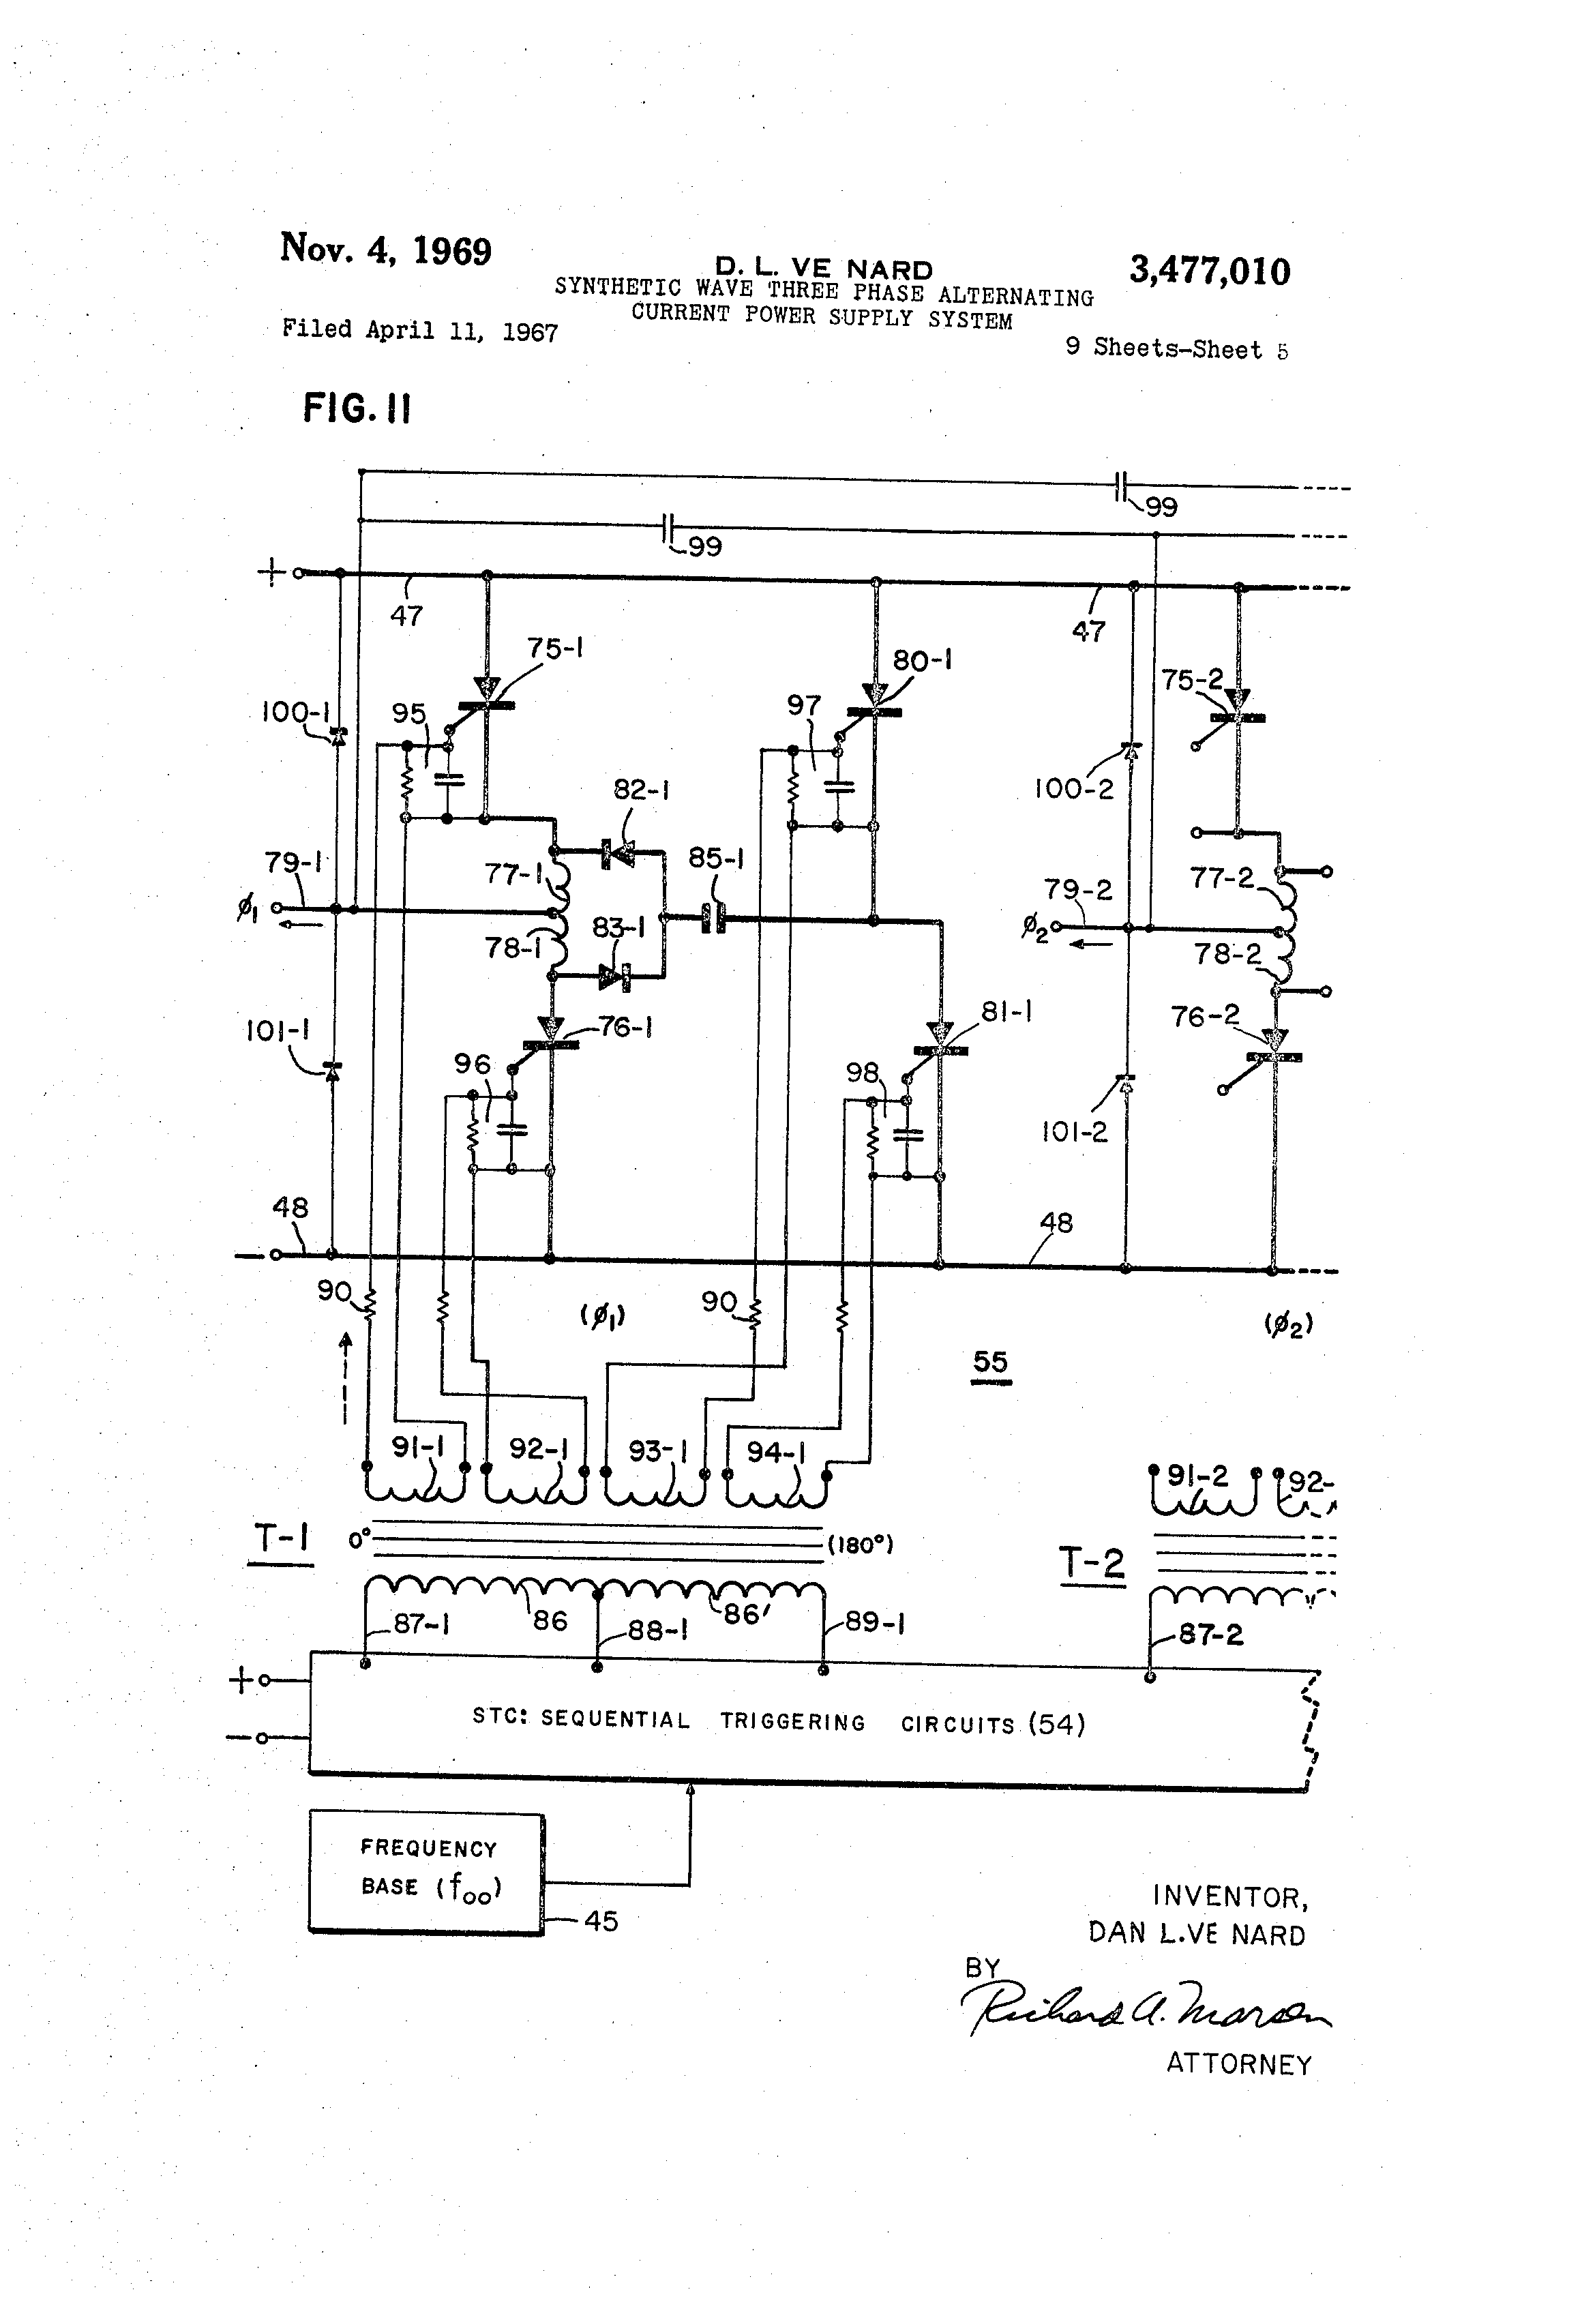 patent us3477010 - synthetic wave three phase alternating current power supply system